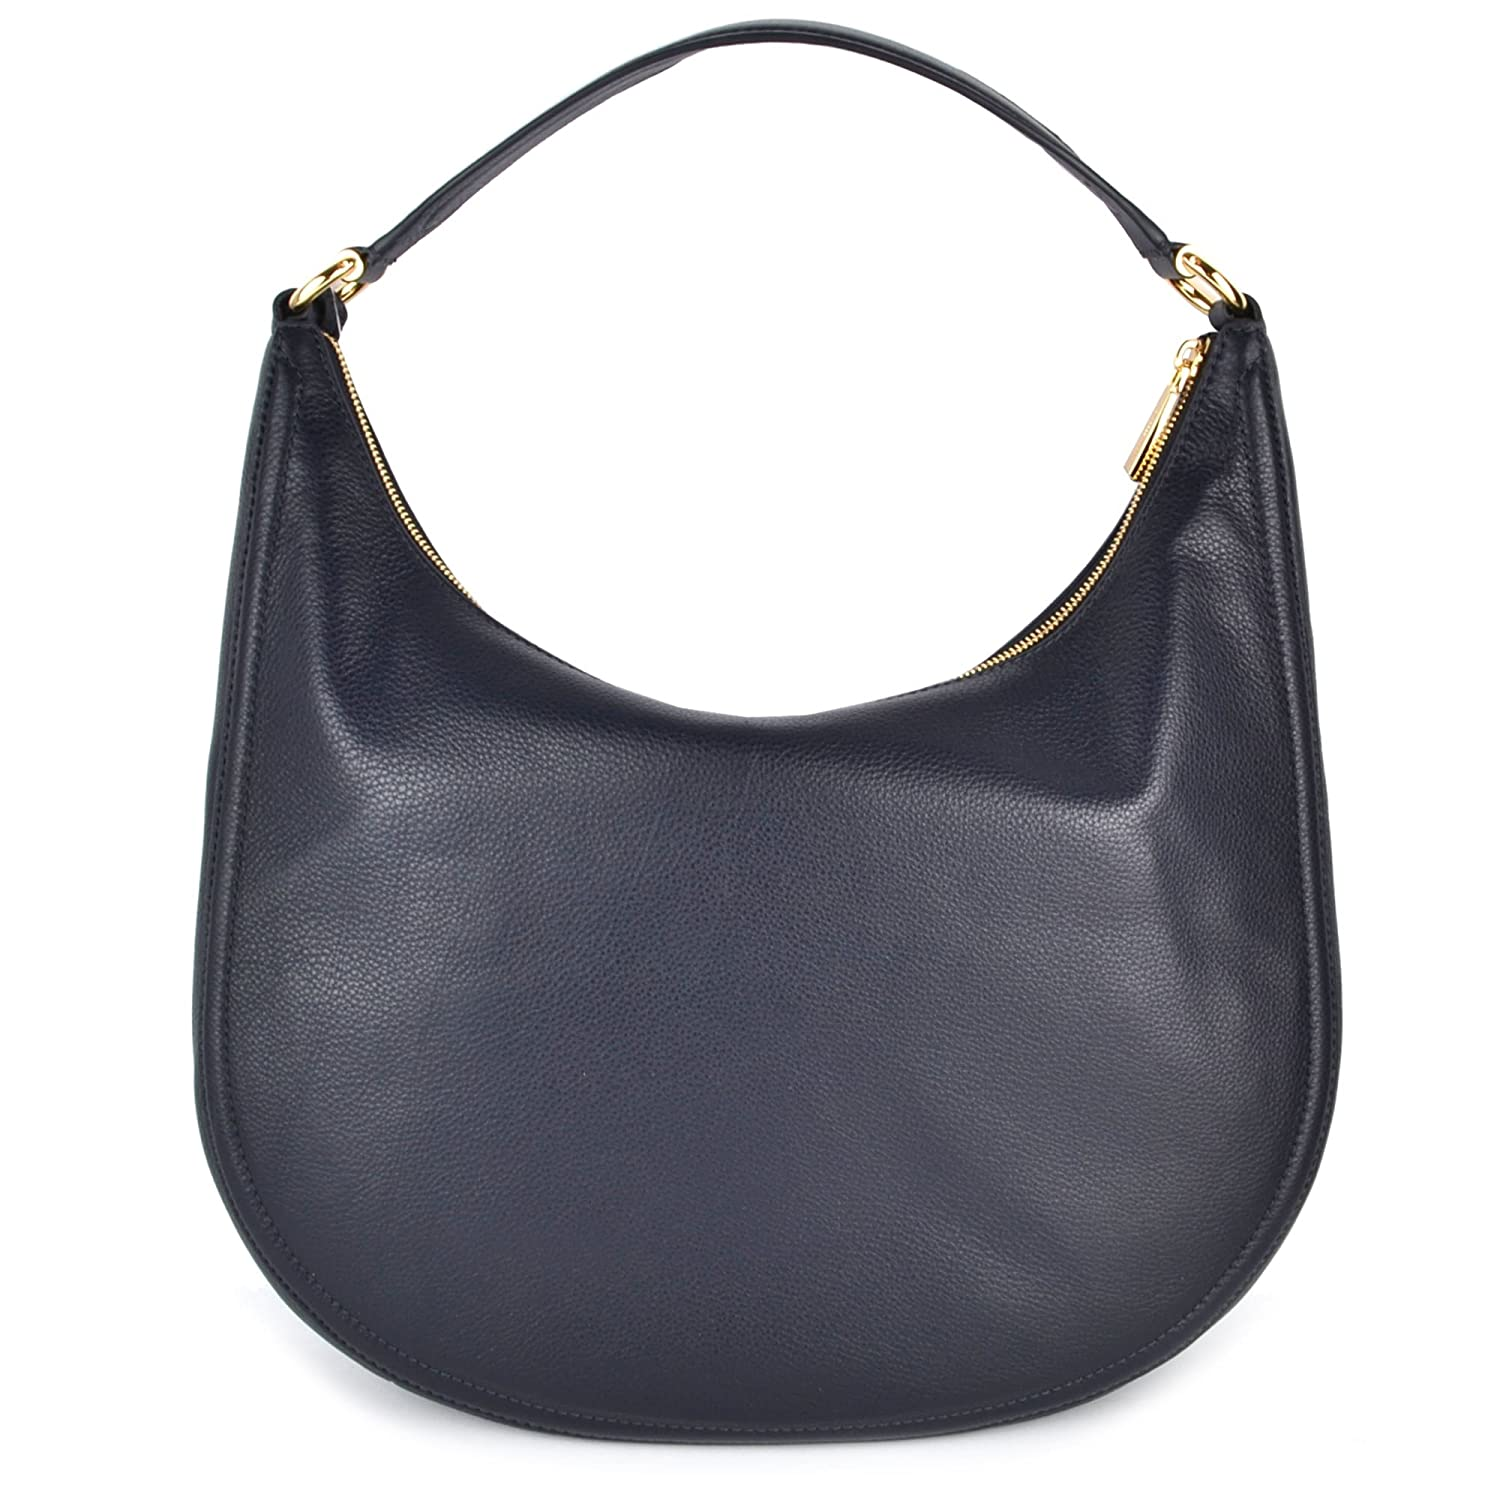 2523c270231e MICHAEL by Michael Kors Lydia Admiral  Navy  Leather Large Hobo Bag one  size Admiral  Amazon.co.uk  Shoes   Bags